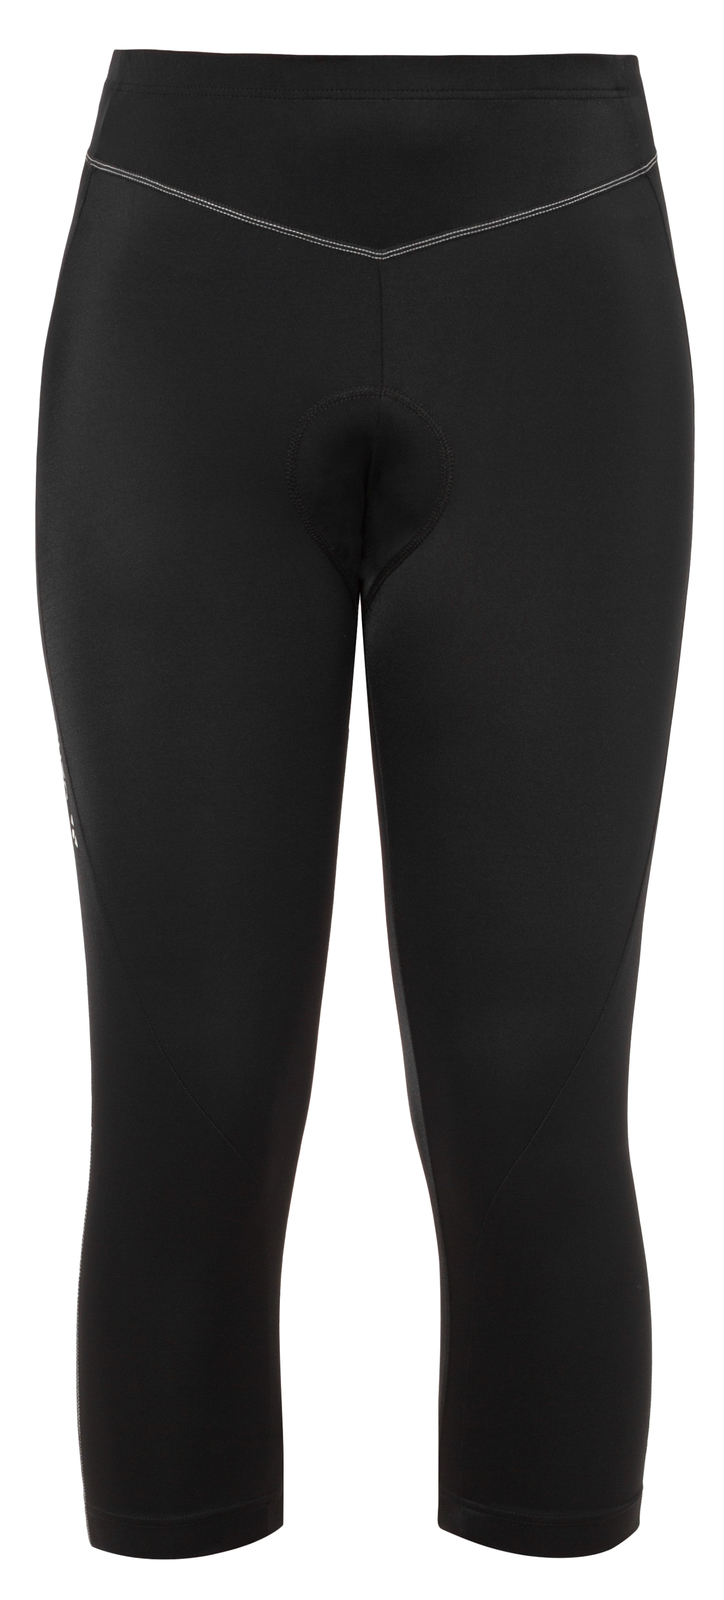 VAUDE Women´s Active 3/4 Pants black Größe 36 - schneider-sports